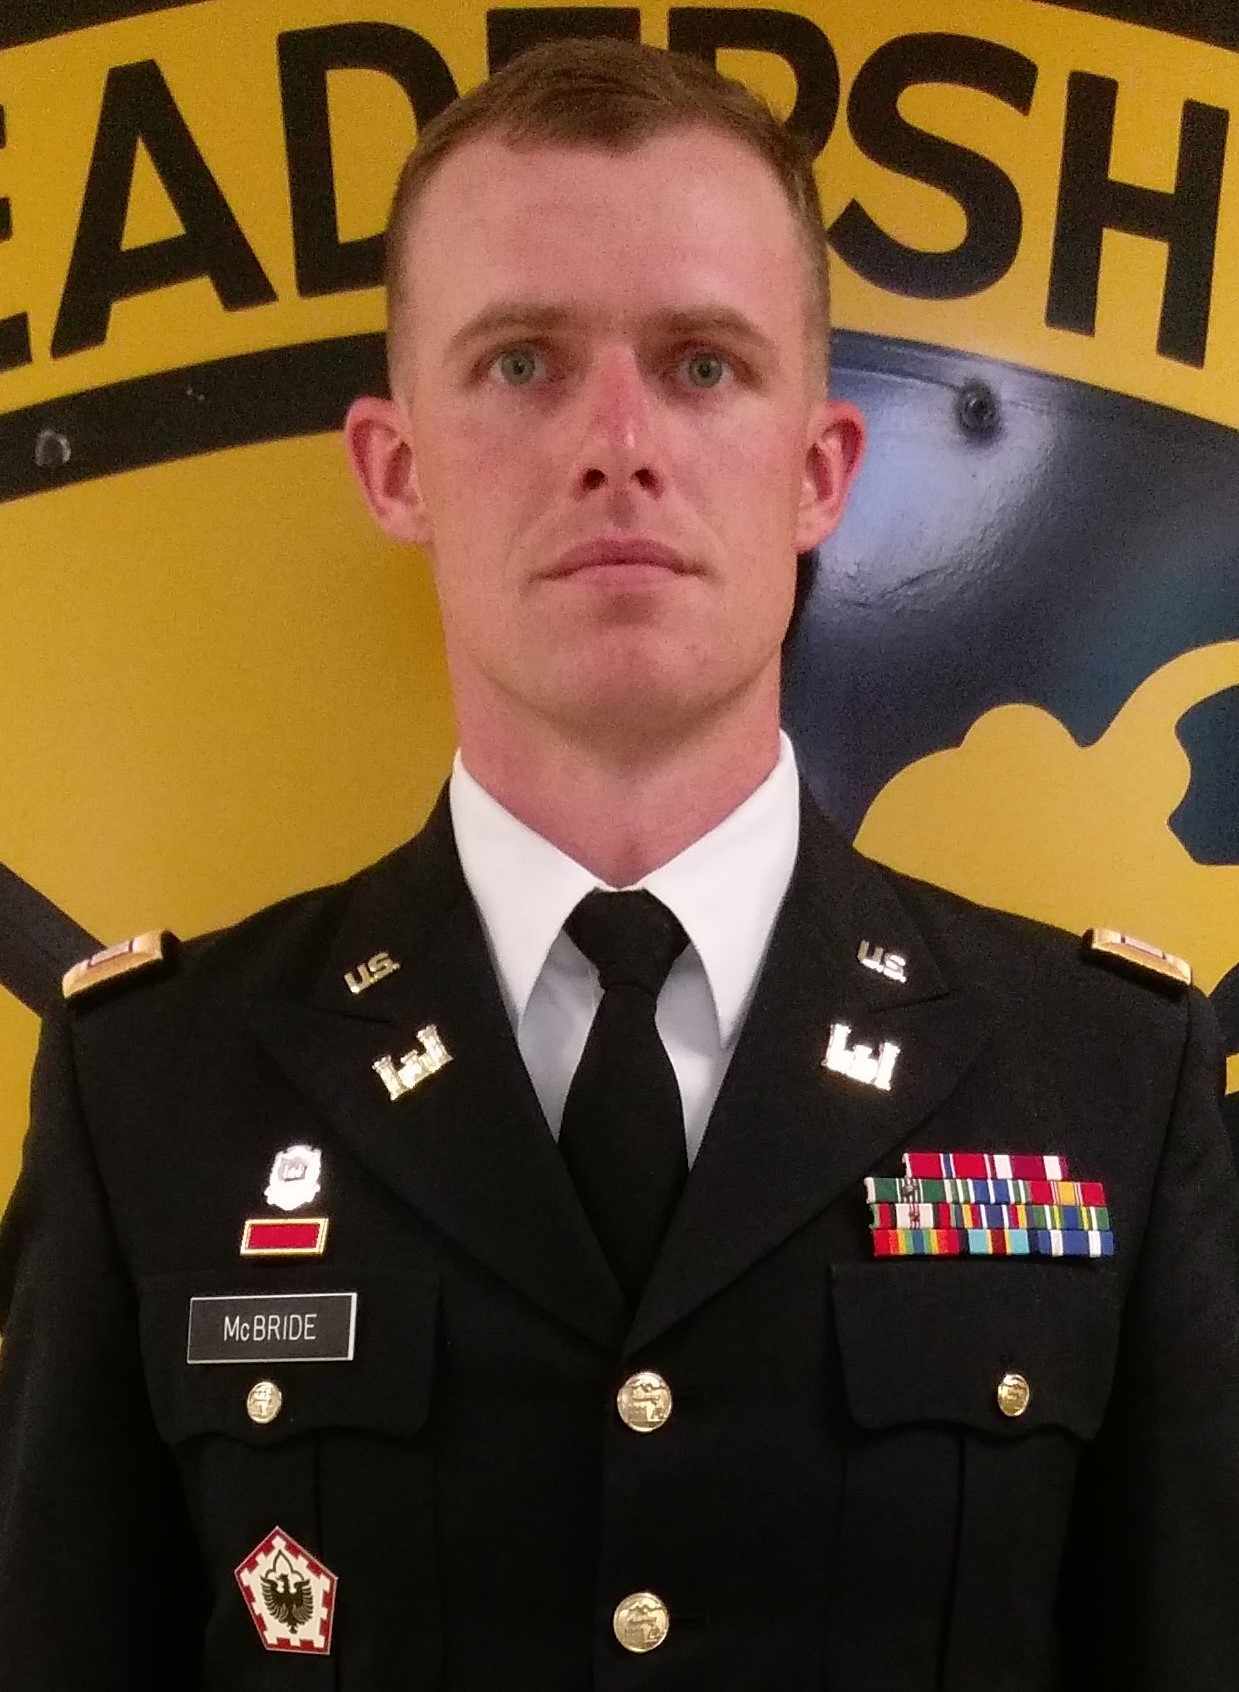 CPT McBride, Asst. Professor of Military Science, Military Science III, BN Supply Officer